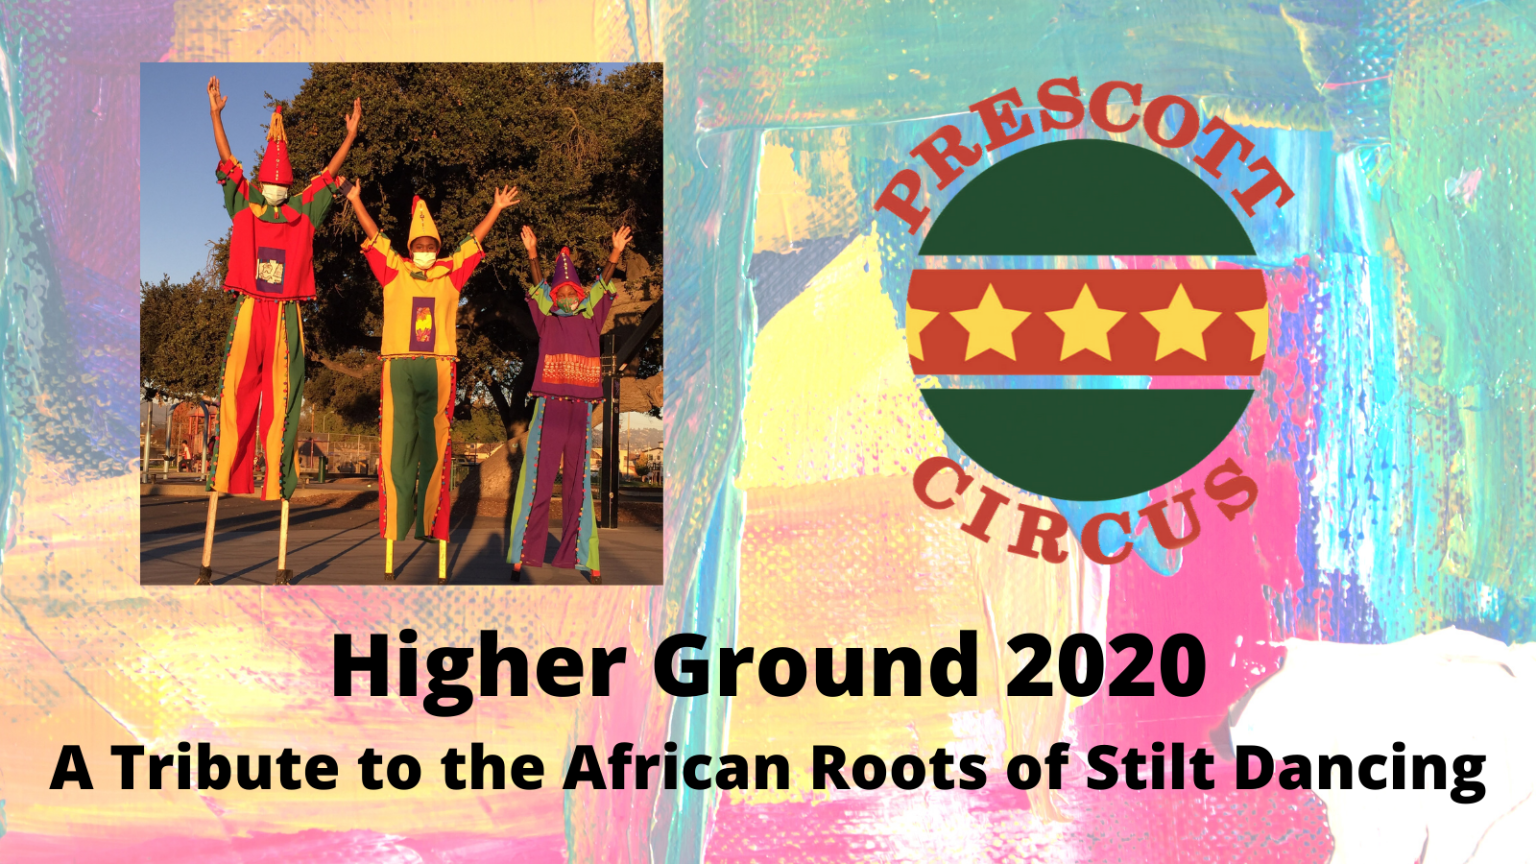 Poster for Higher ground showing three kids on stilts in costumes